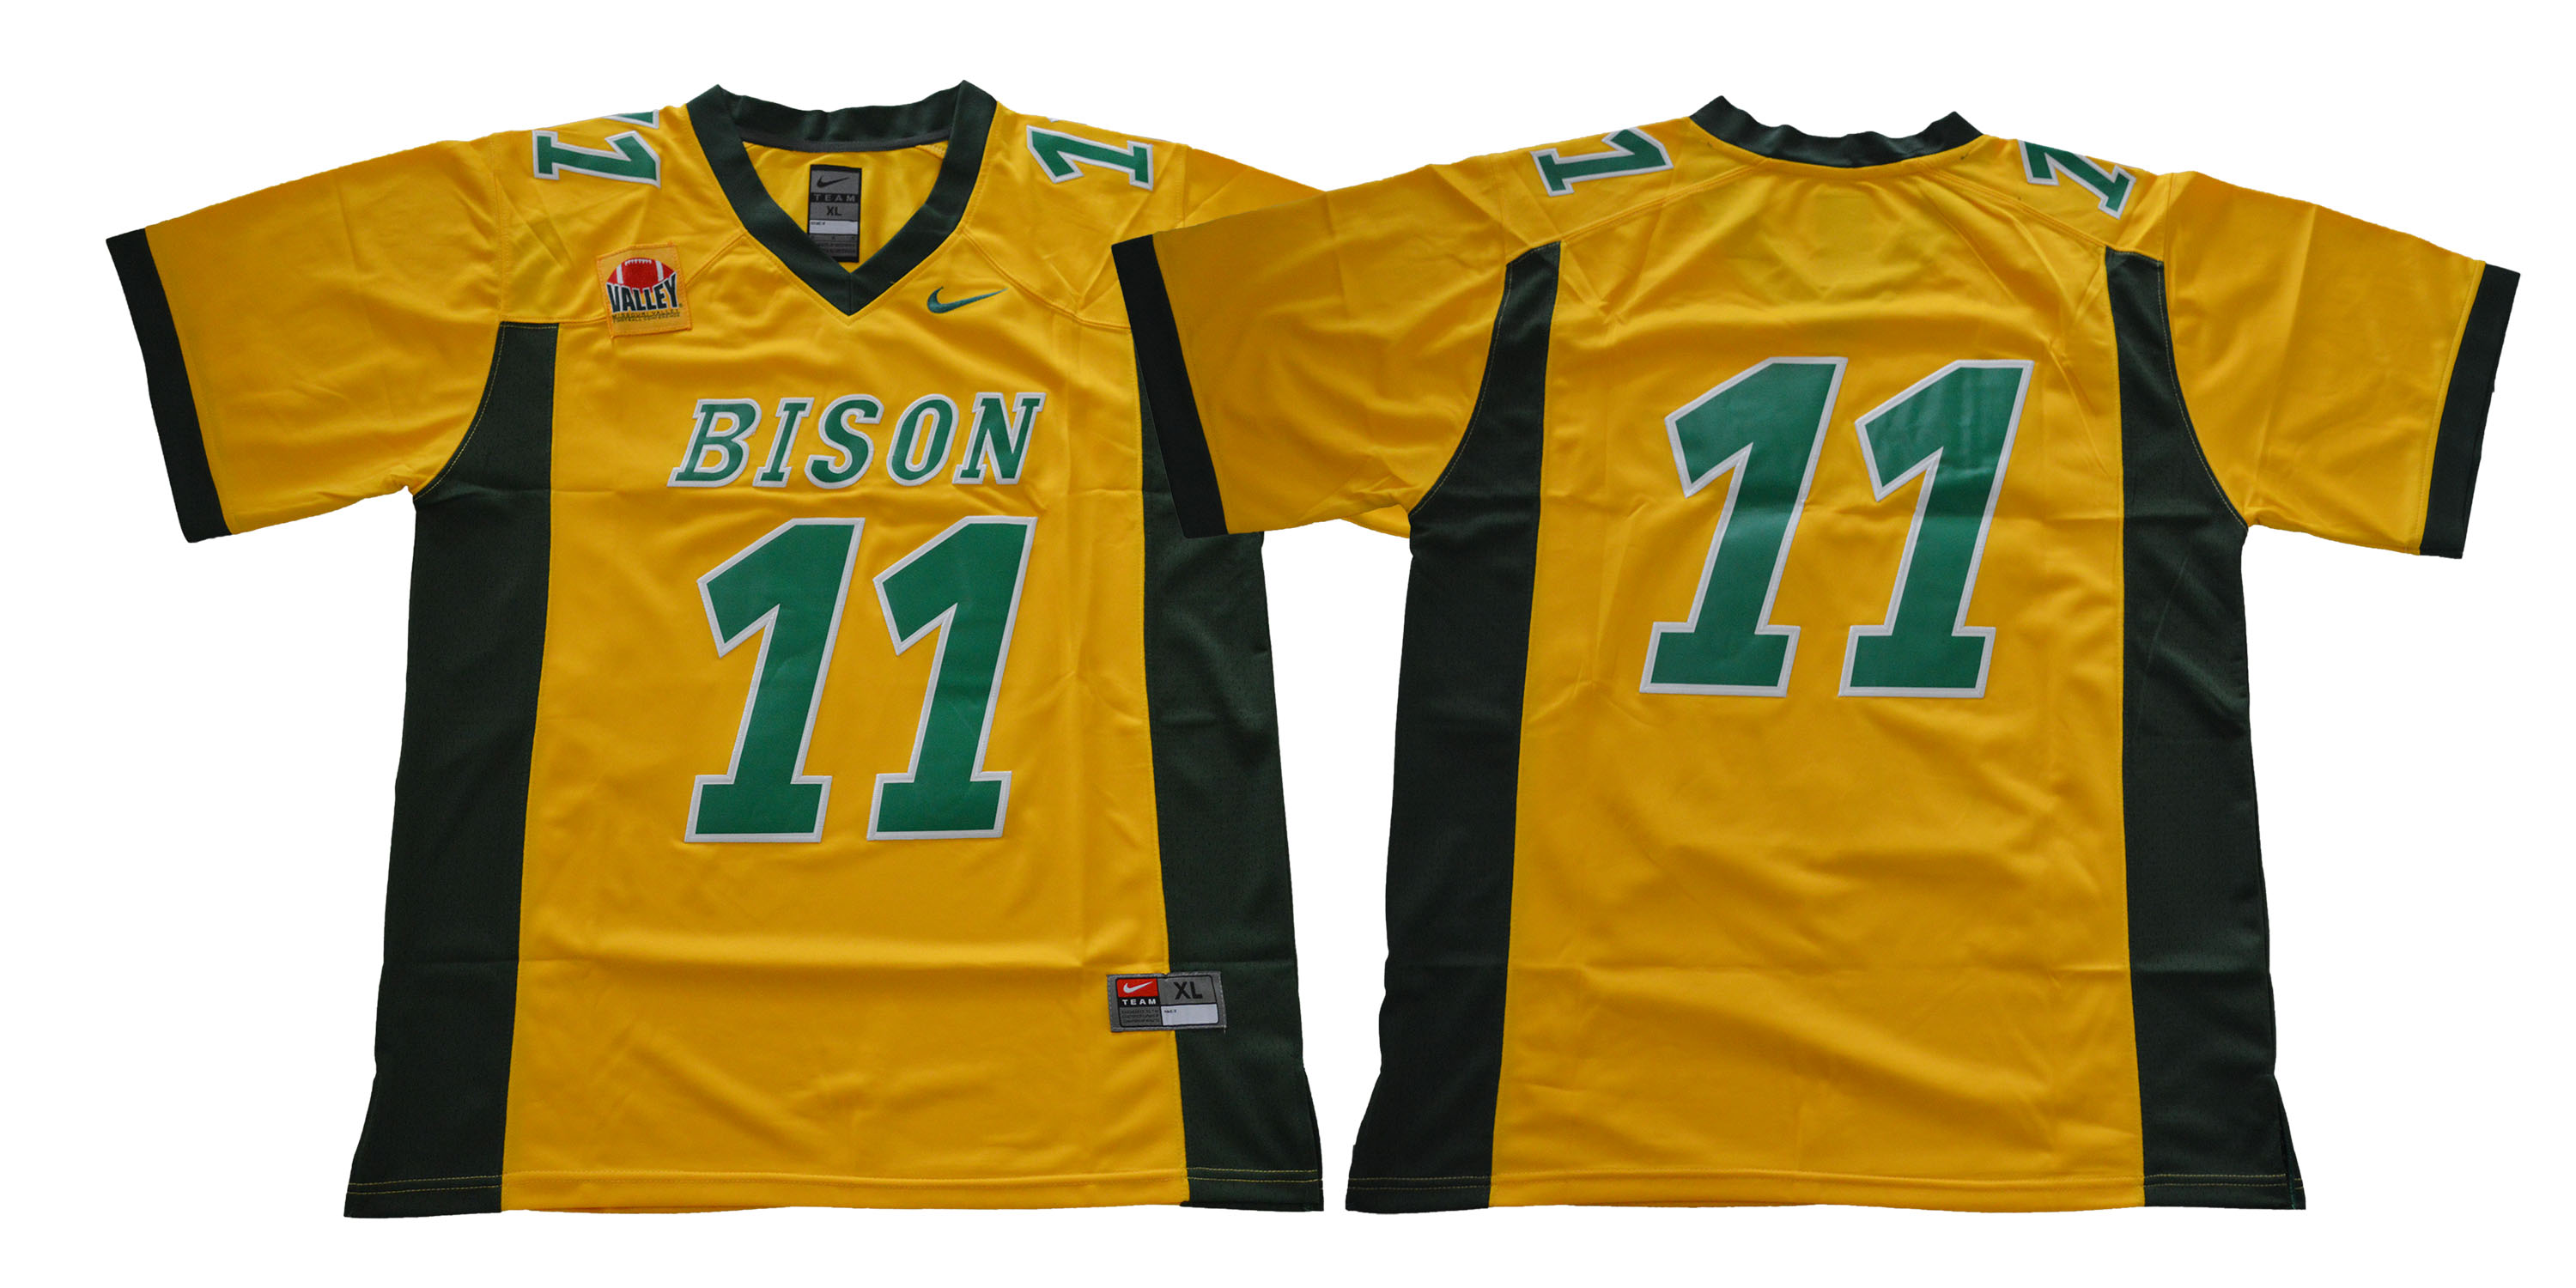 North Dakota State Bison #11 Yellow College Football Jersey